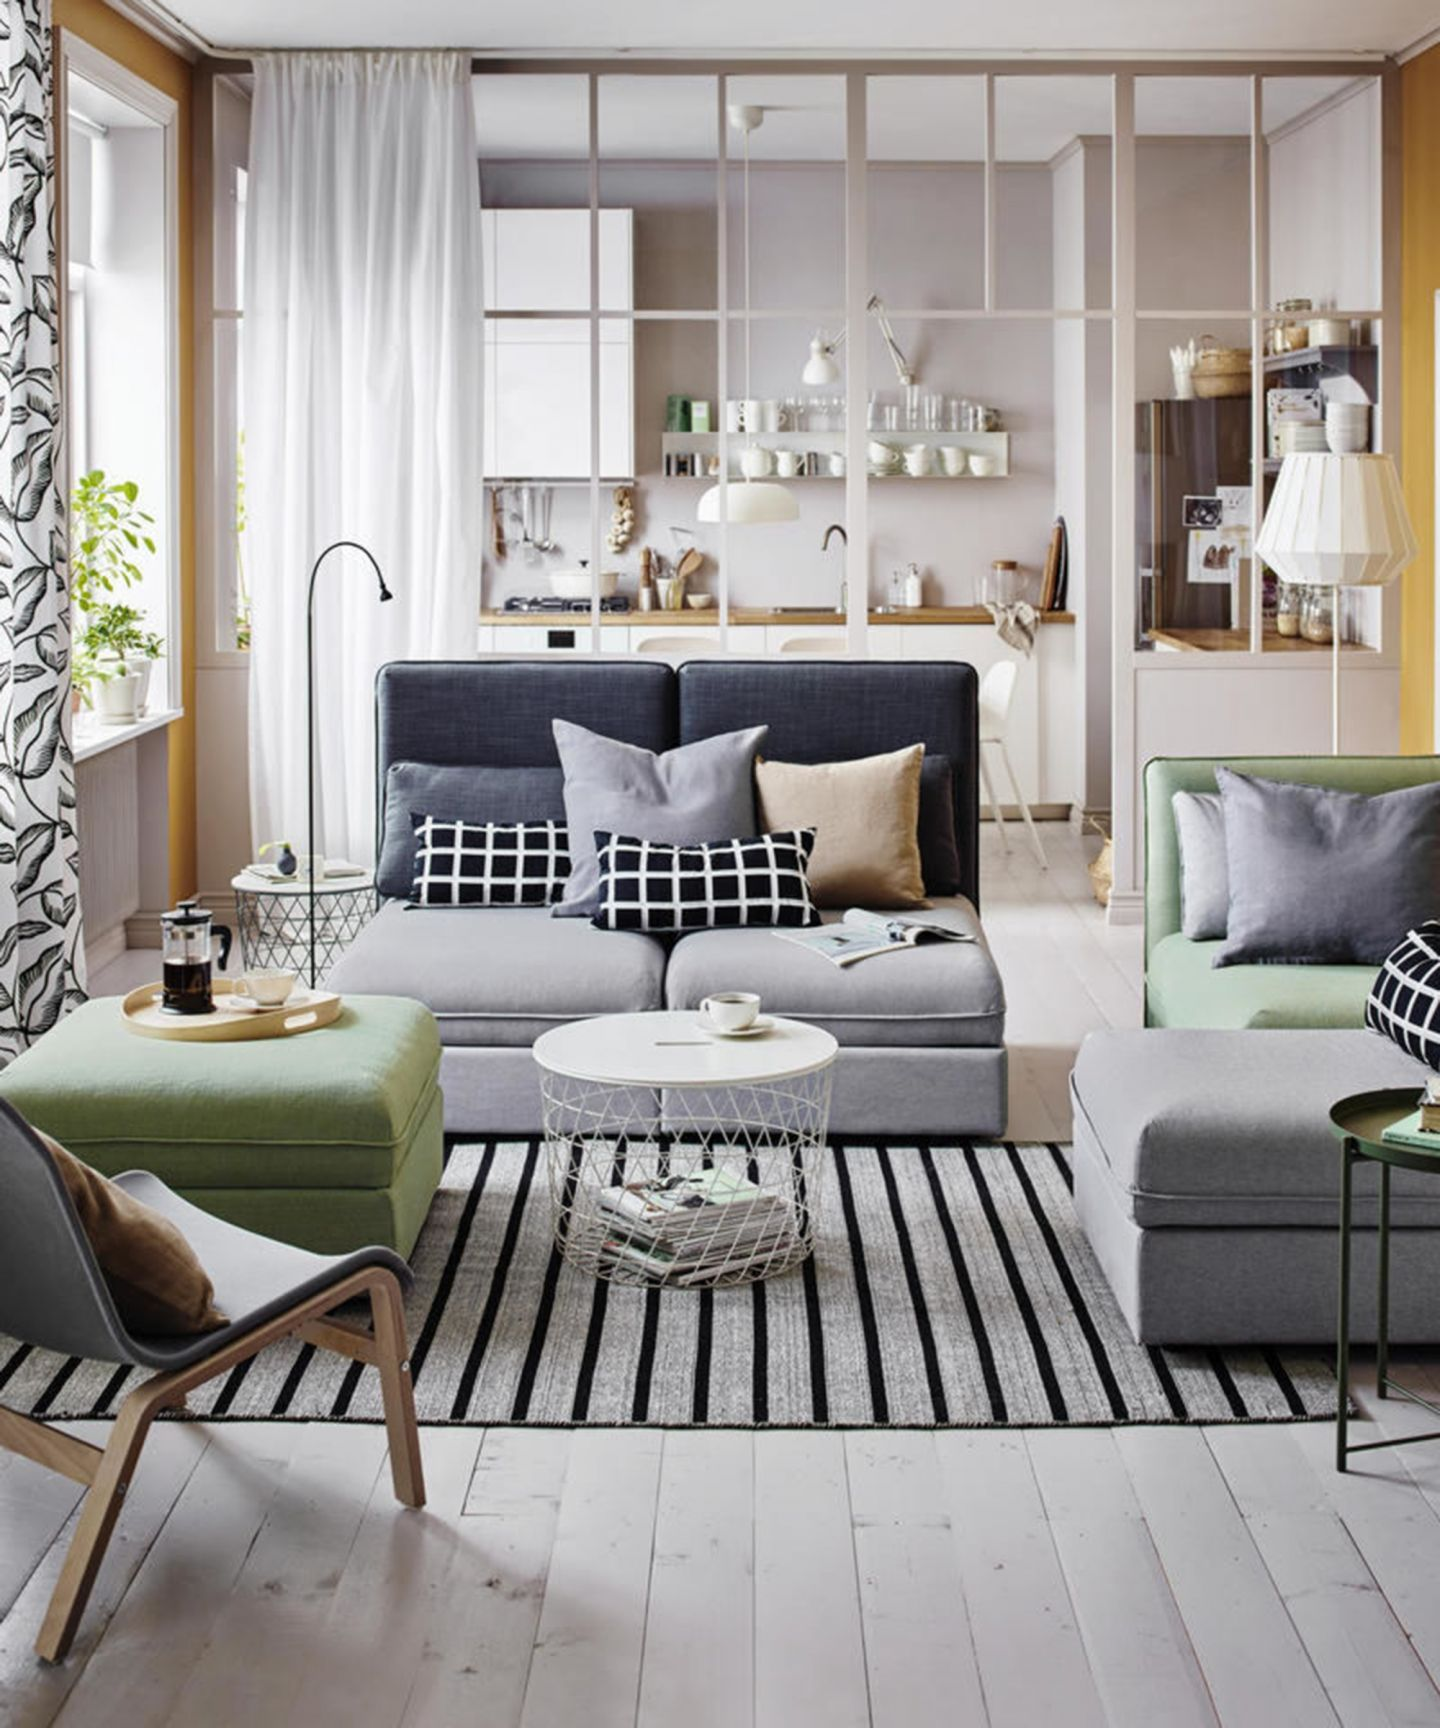 All The Home Products You Need From Ikea S 2018 Catalog In